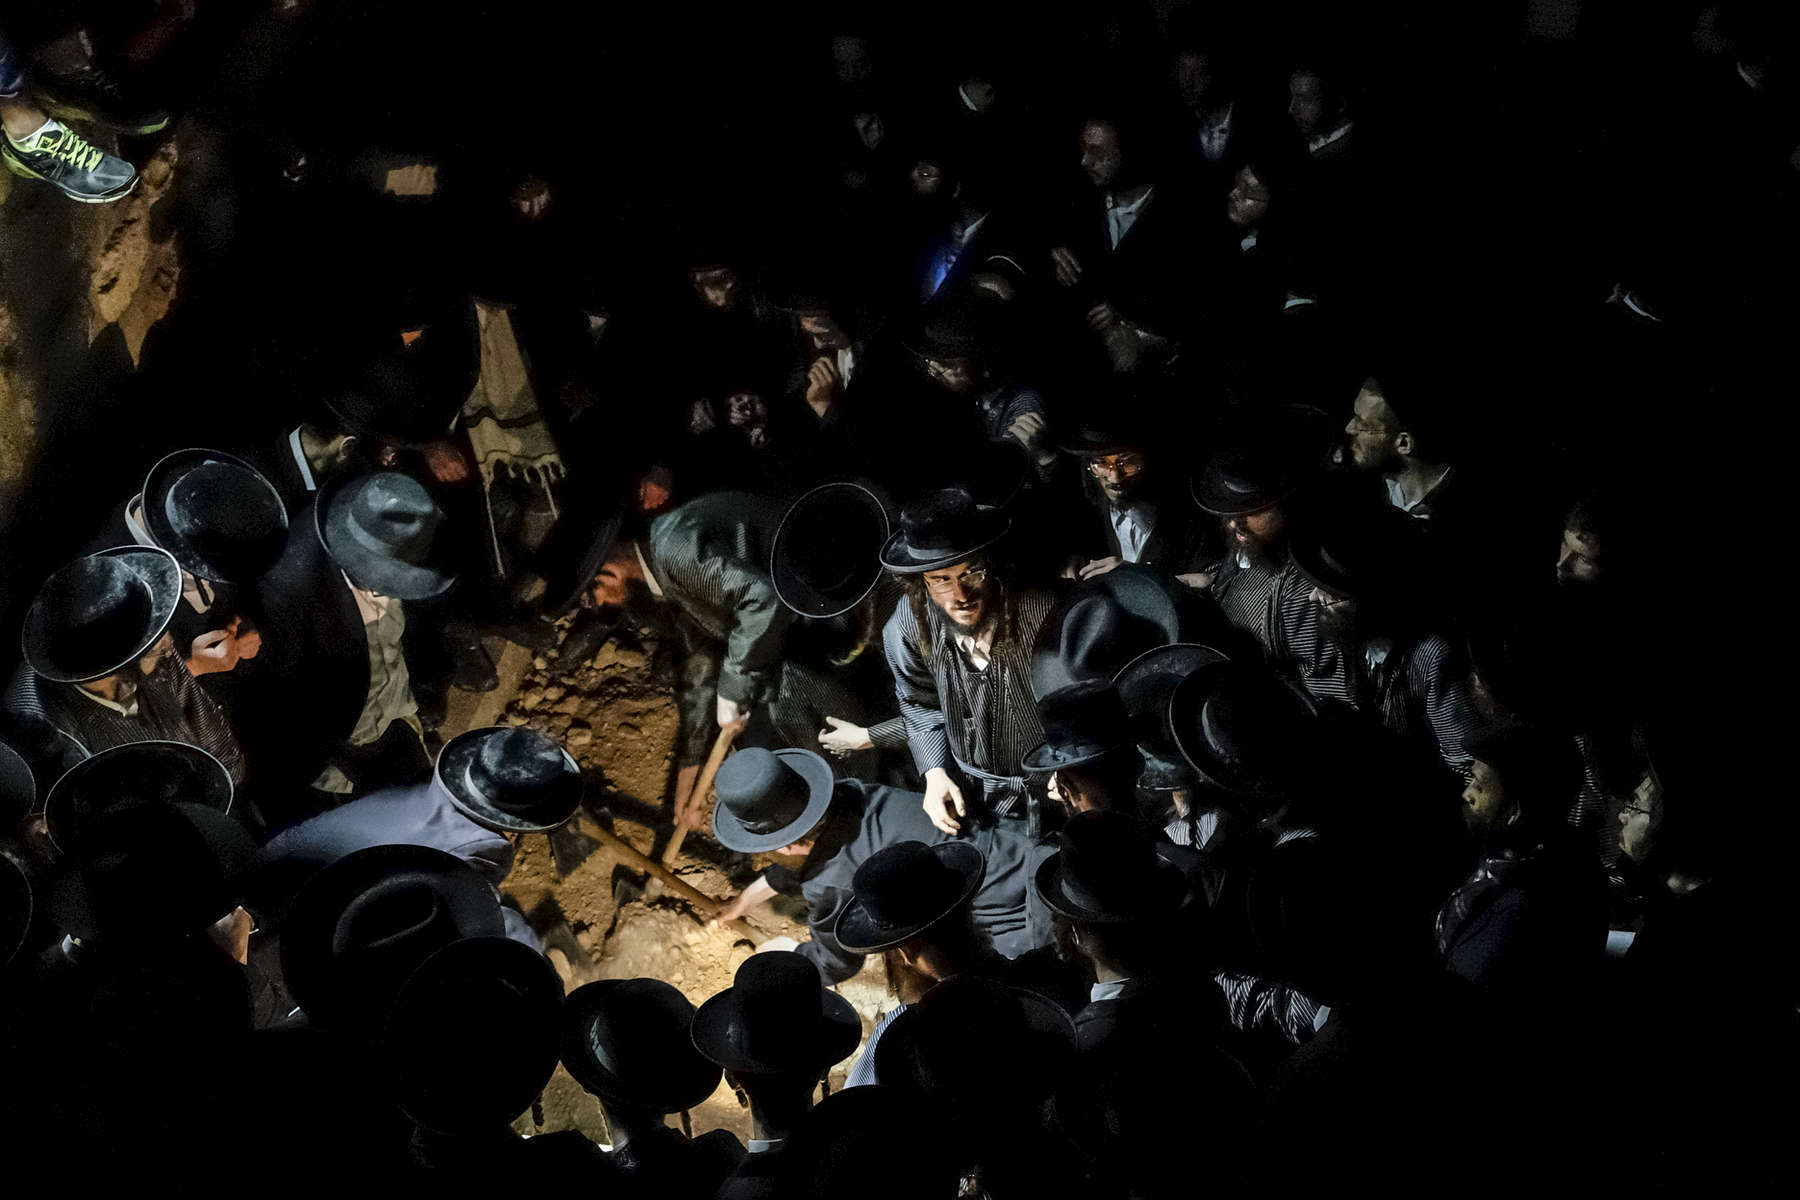 2014.  Jerusalem.  Israel. The funeral of Avraham Walz, 29, killed in an attack earlier that day by a Palestinian in a stolen digger.  Six Israelis were injured and the assailant, identified as Muhammed Naif el-Ja'abis.  Walz was a member of Toldos Aharon, a strongly Anti-Zionist Hasidic movement.